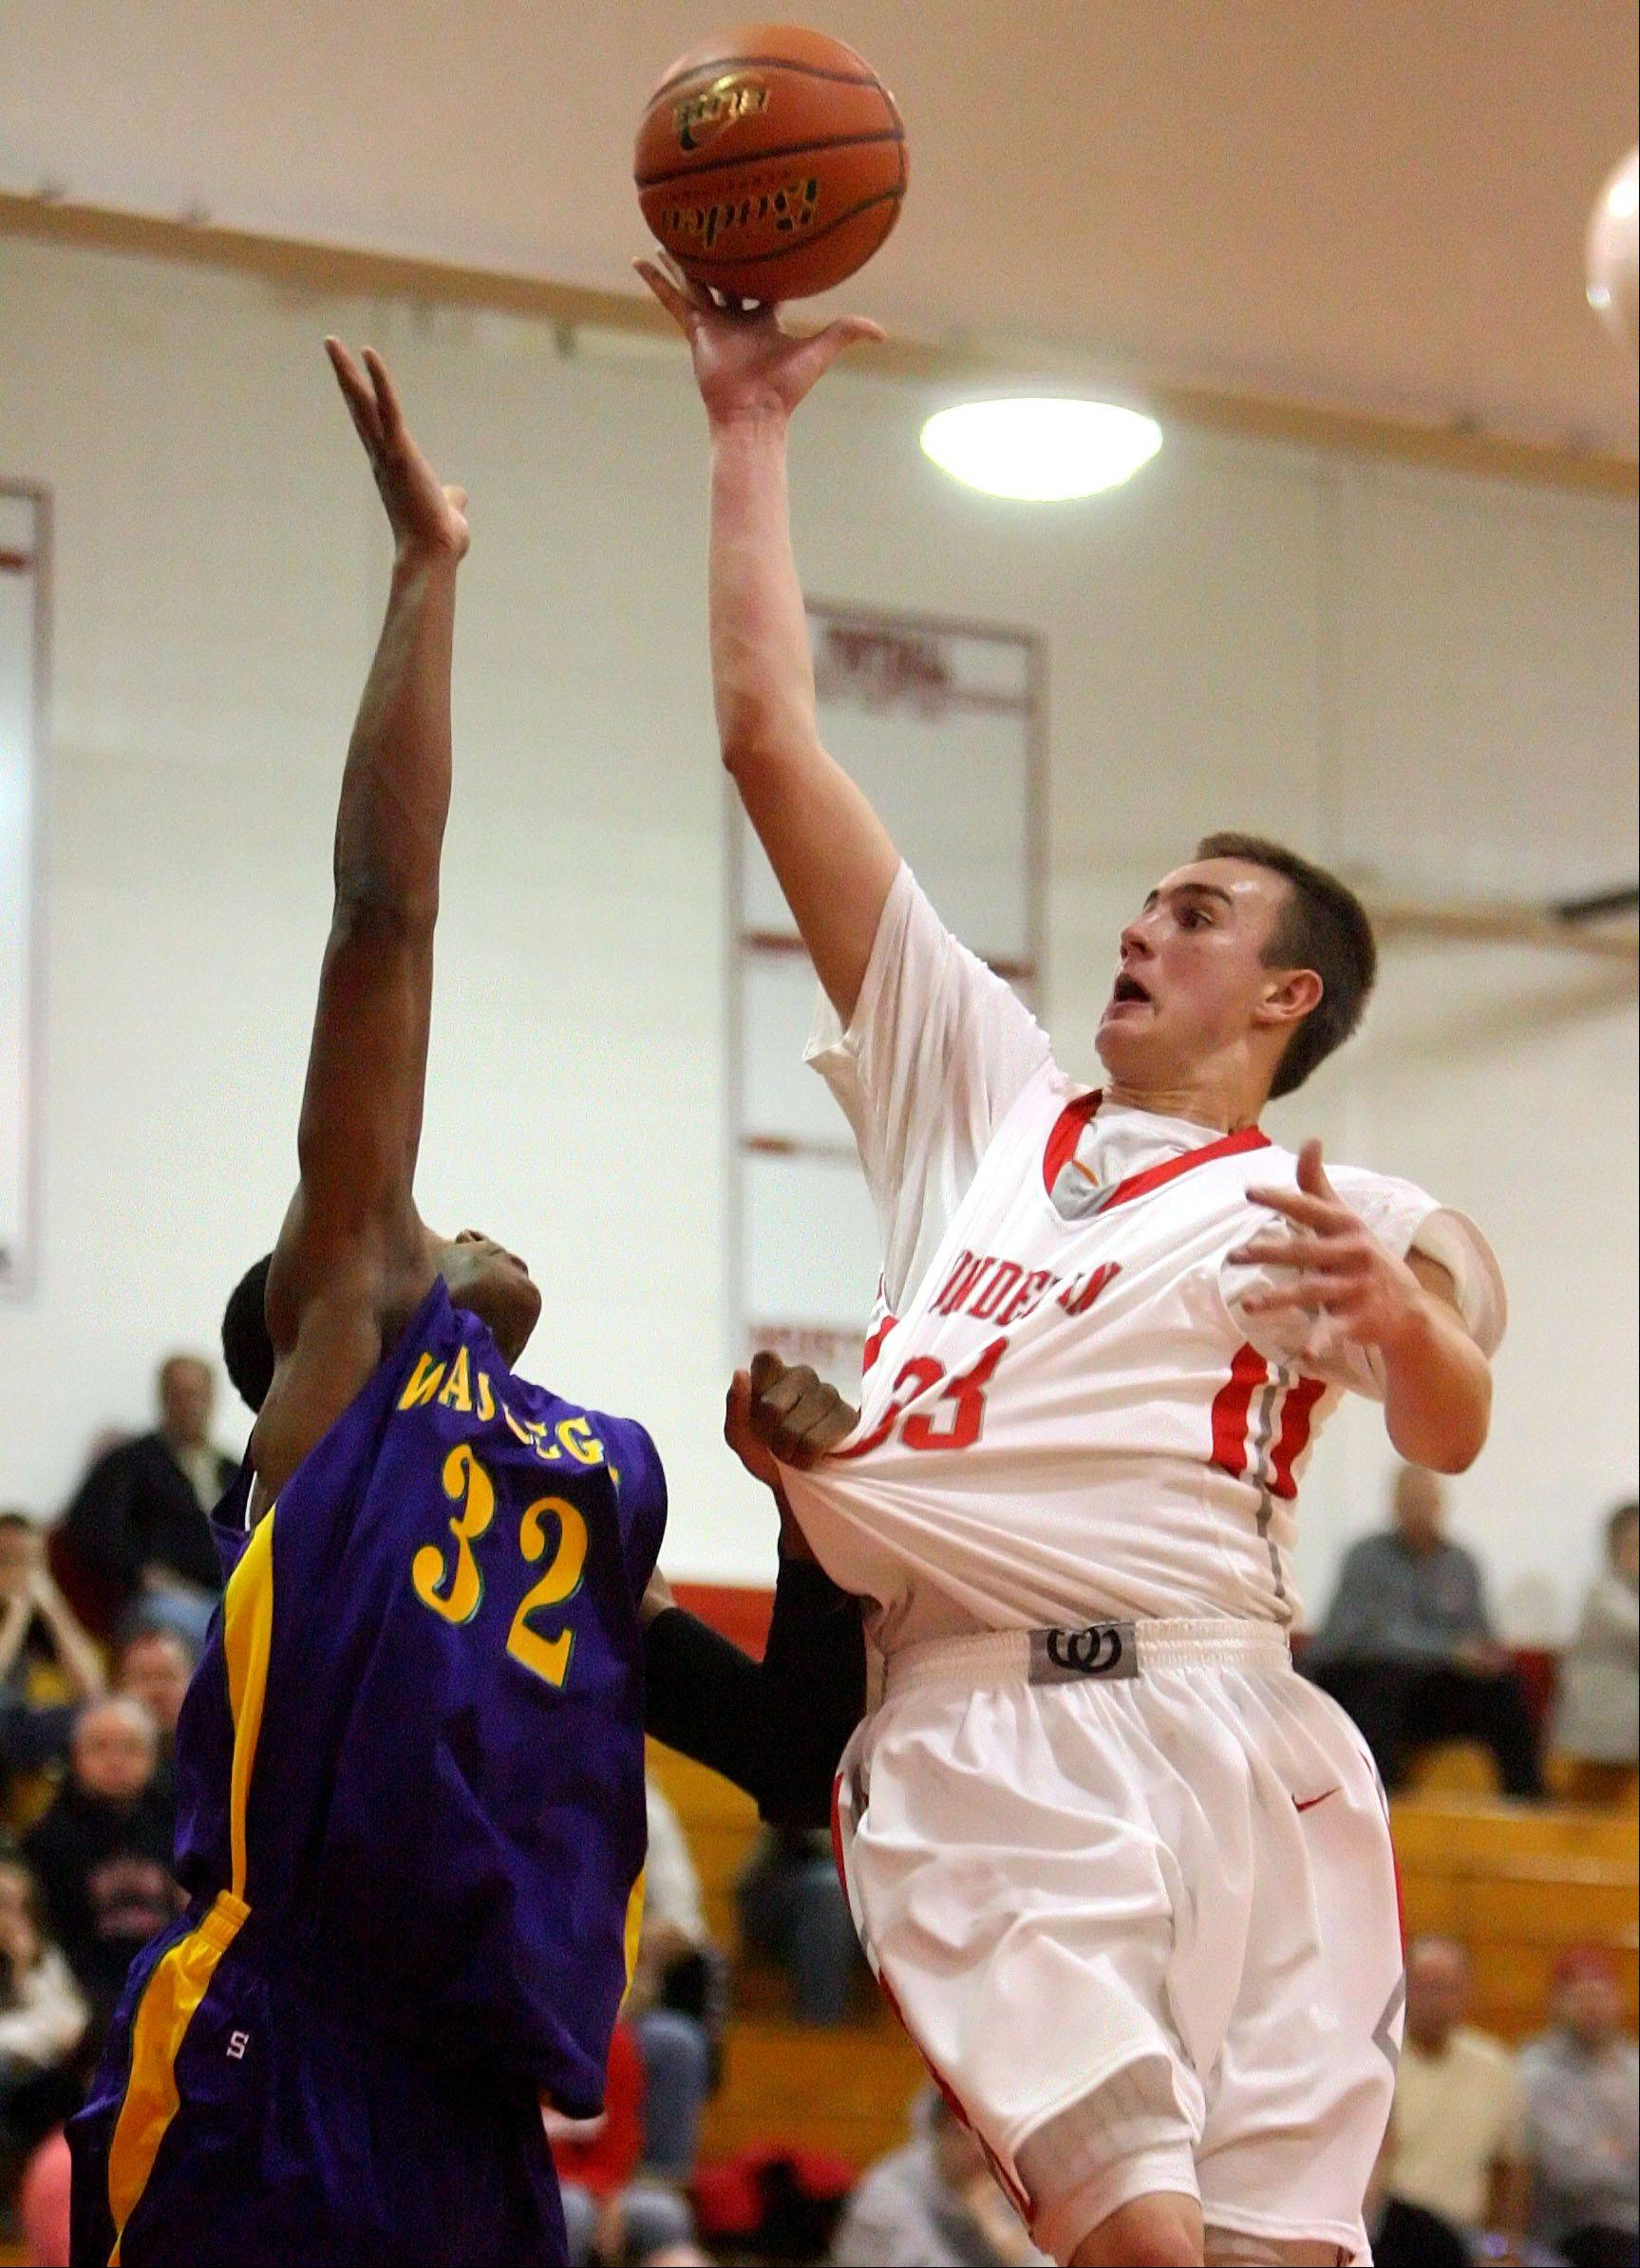 Mundelein's Sean O'Brien, right, drives on Waukegan's Jerome Davis on Friday night at Mundelein.